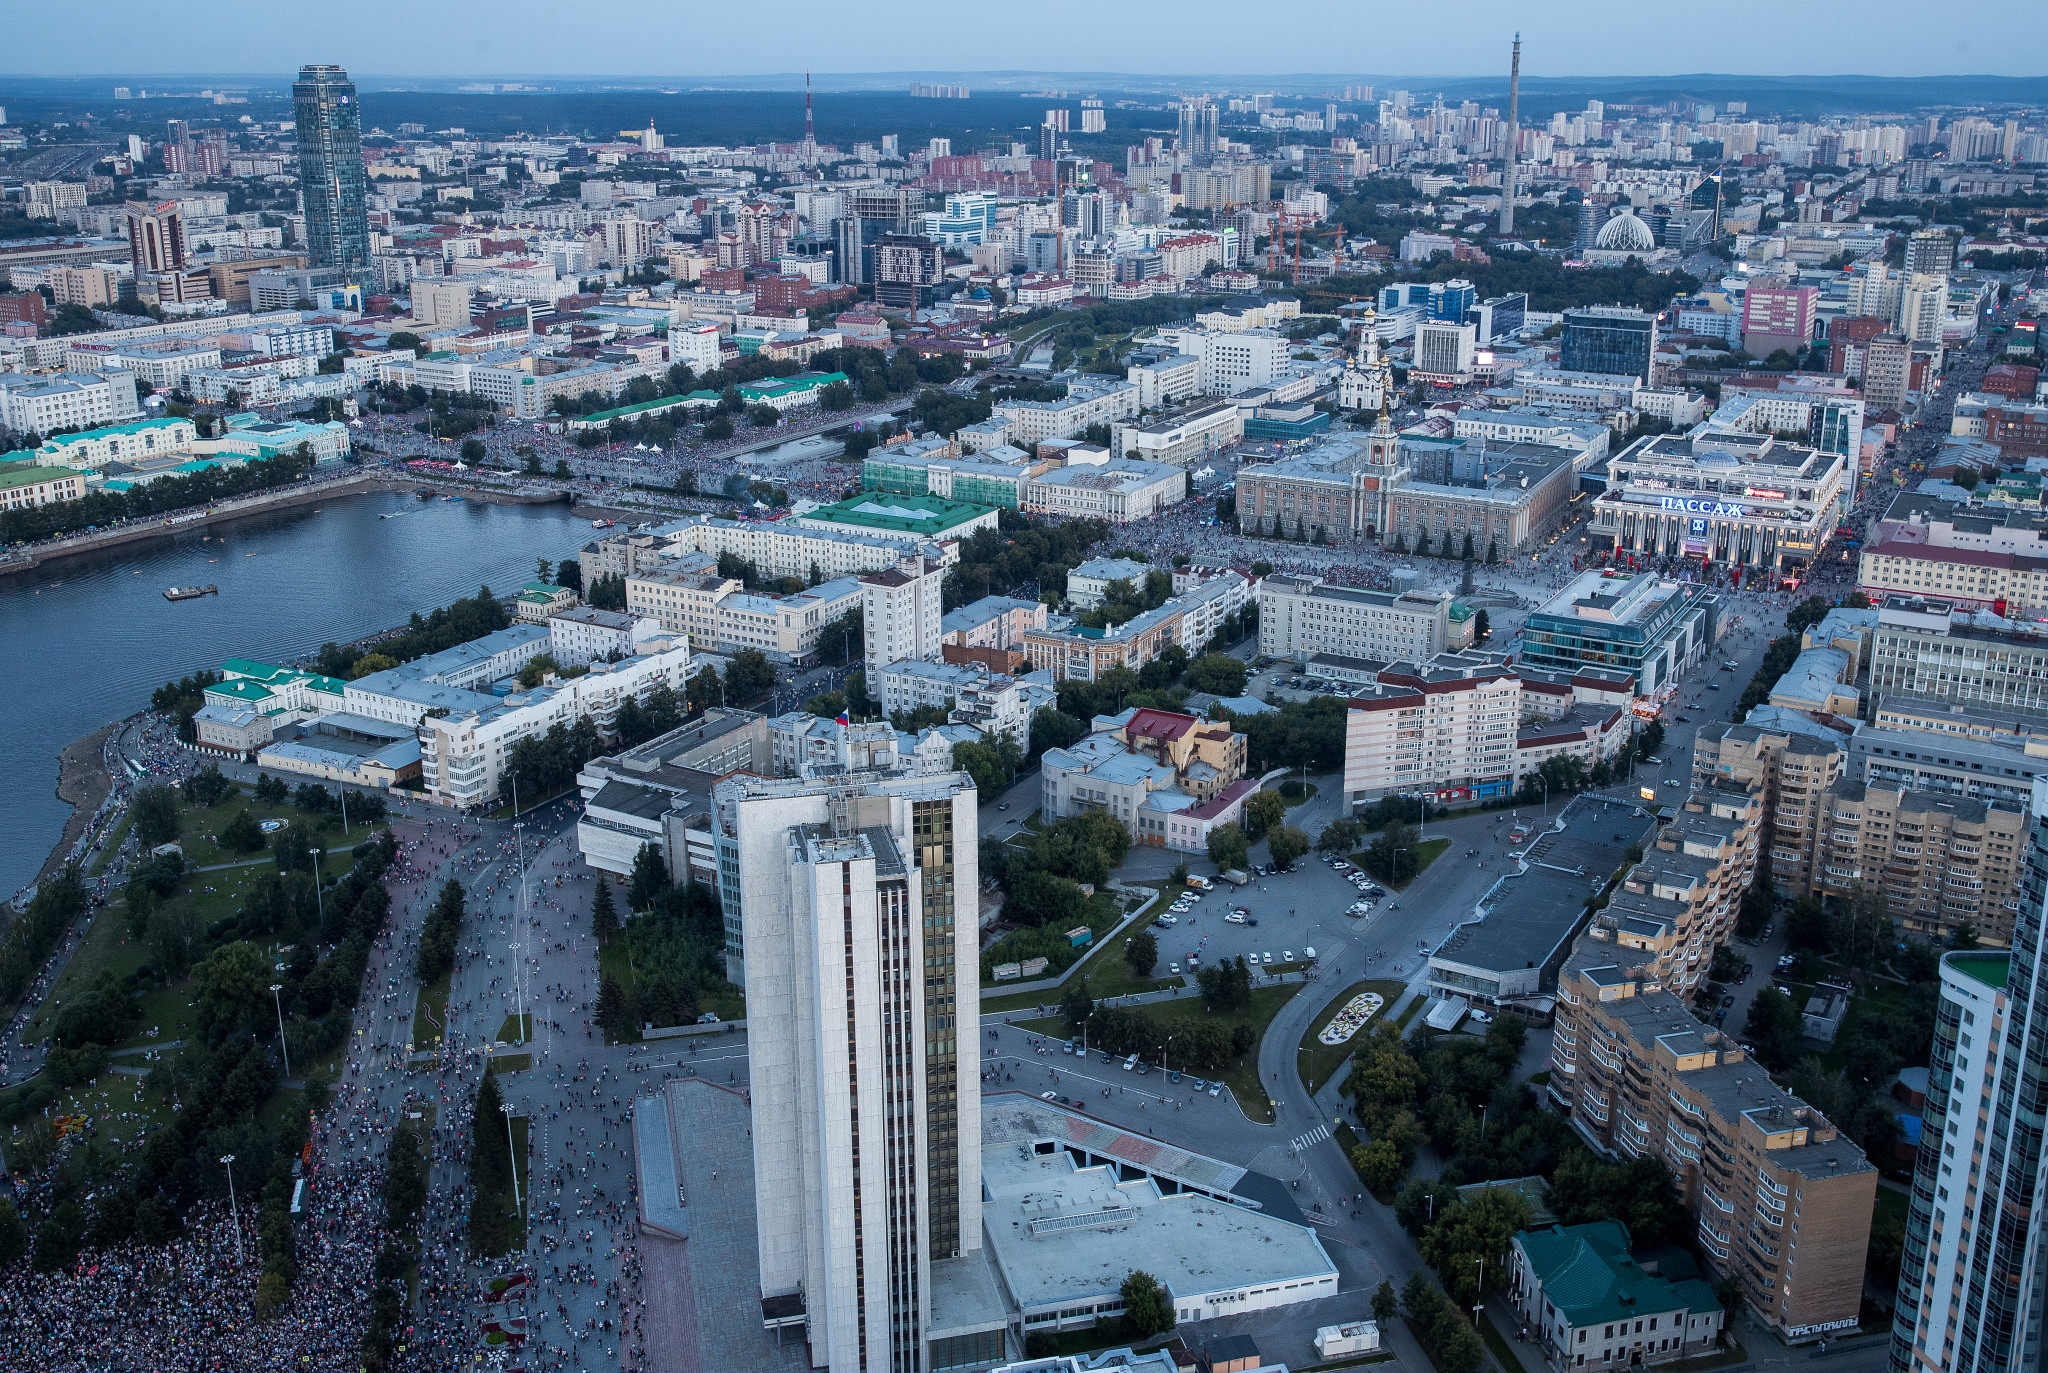 Yekaterinburg is set to be the second Russian city to host the Summer World University Games after Kazan - Moscow stage the event while still in the Soviet Union ©Getty Images